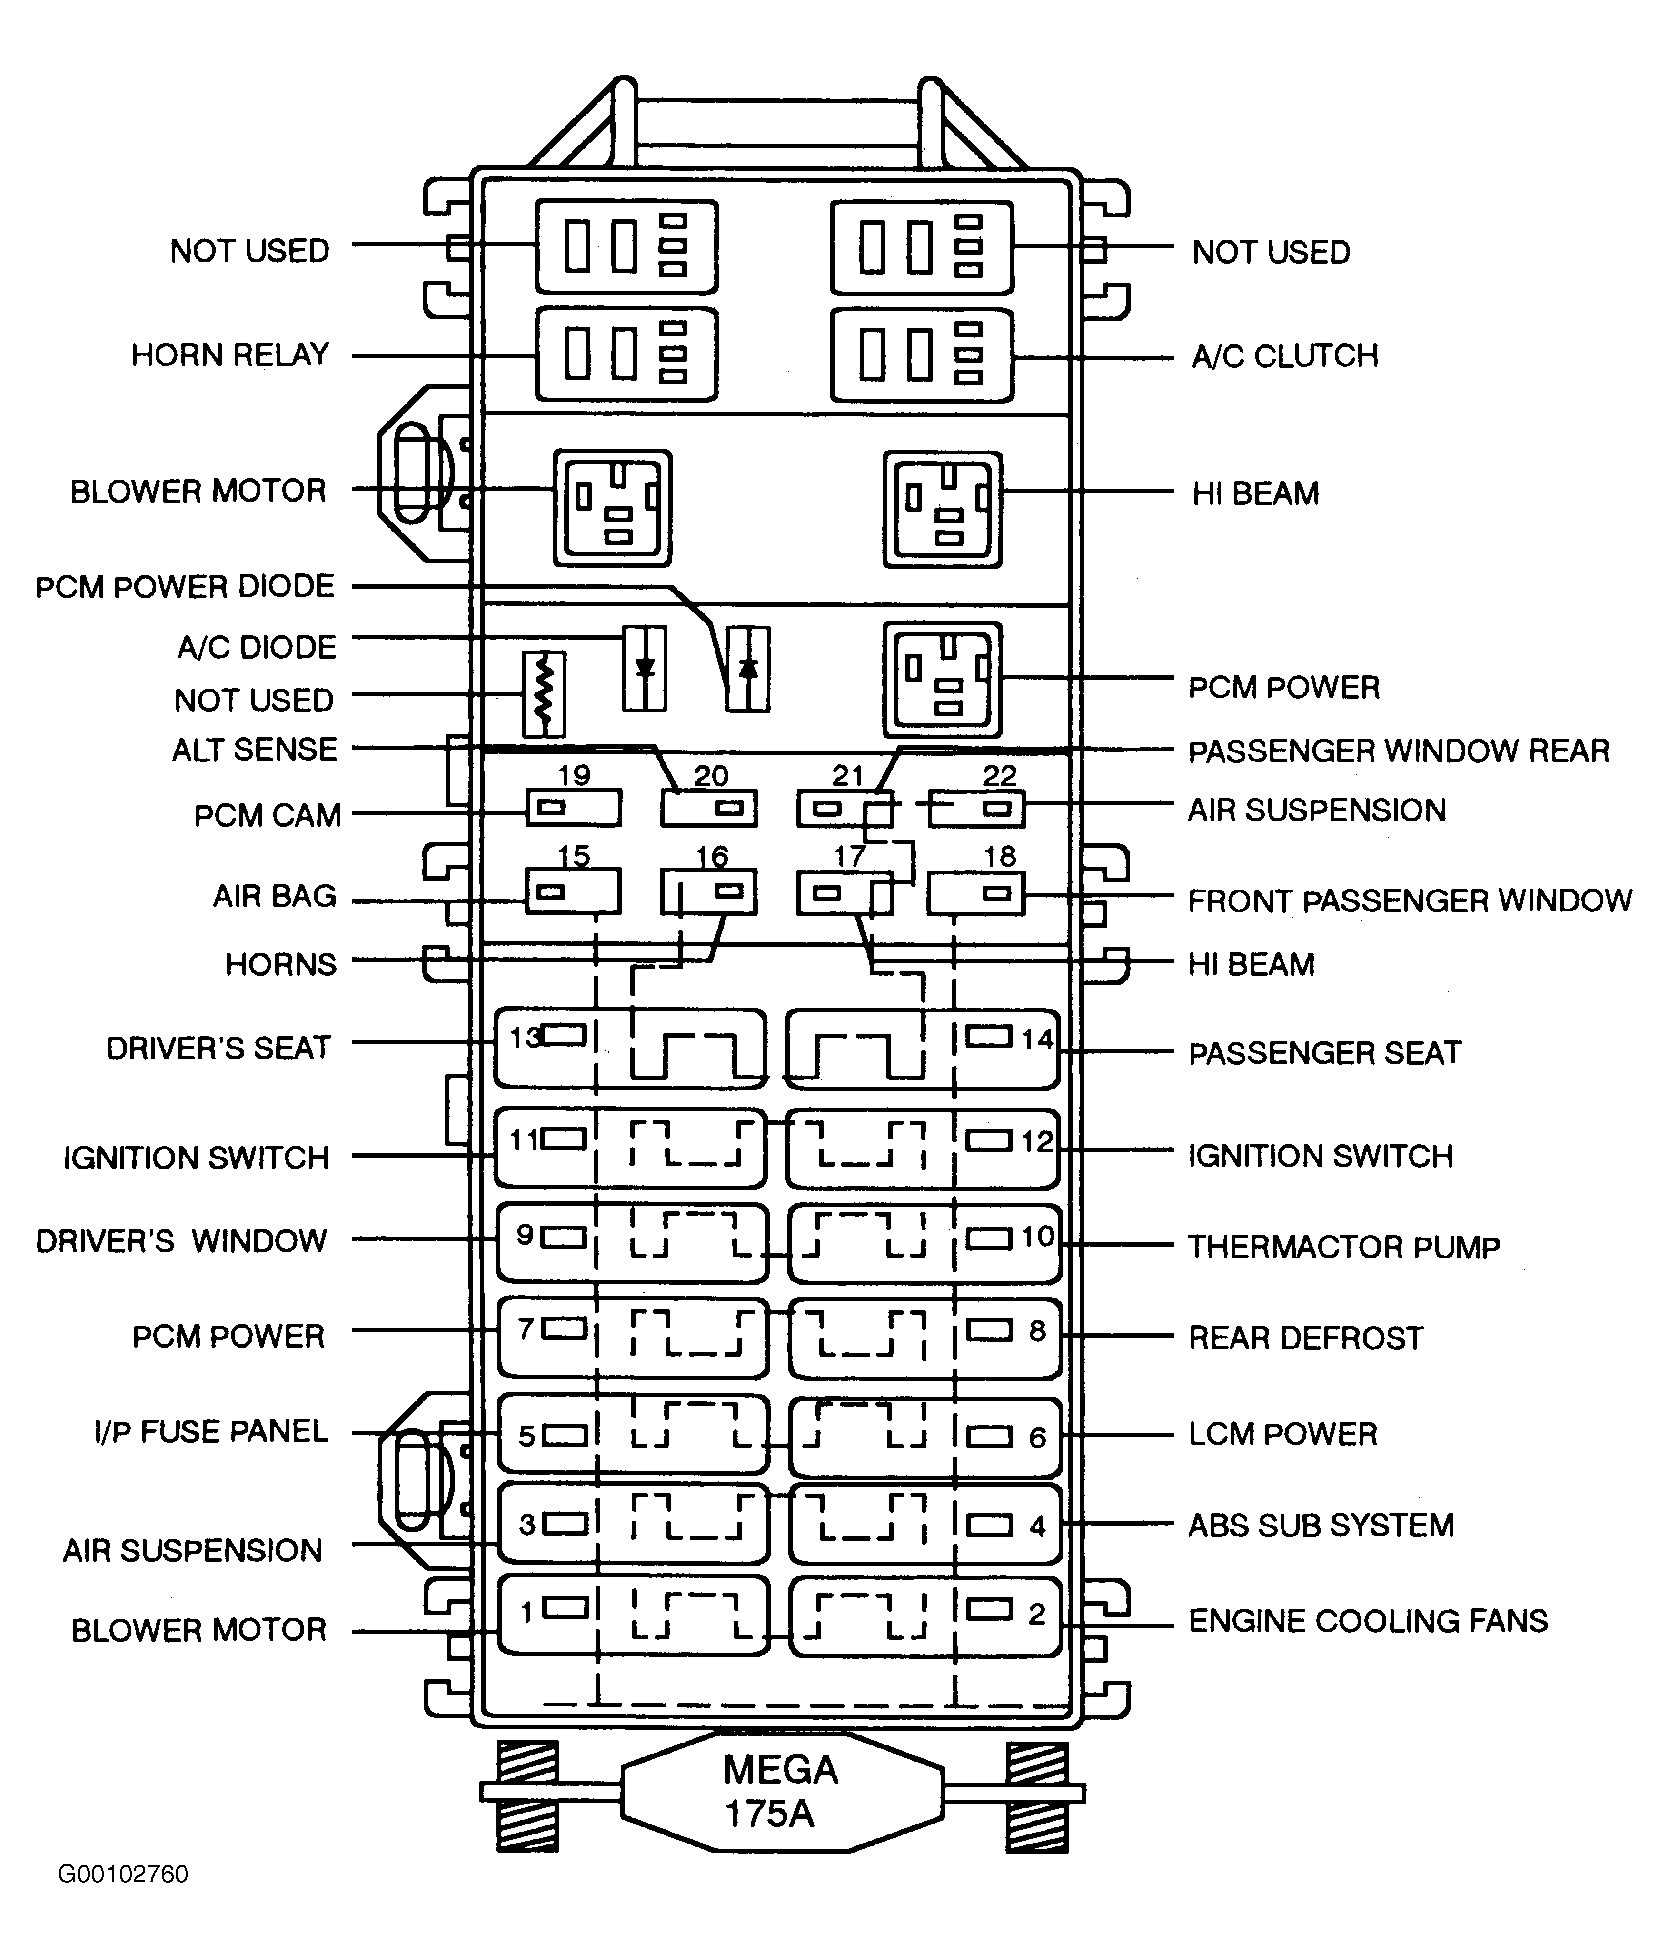 hight resolution of 96 lincoln town car fuse diagram wiring diagram database blog 1984 lincoln town car wiring diagram